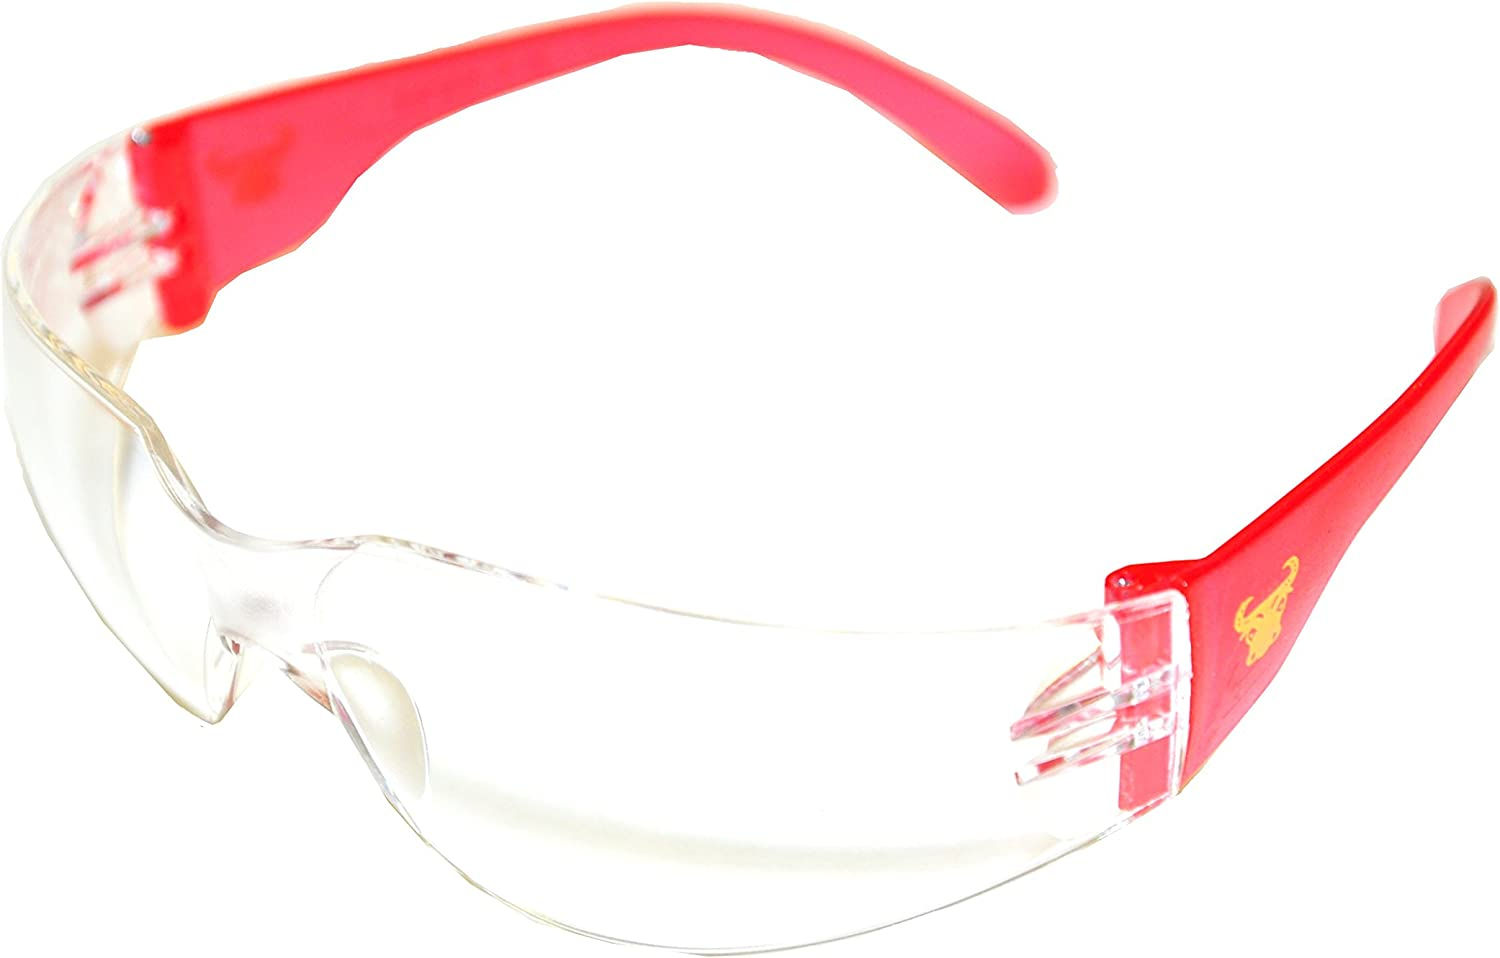 G & F 13016-6 EyePRO Scratch, Impact & Ballistic Resistant Safety Goggles with Clear Lens (6 Pack)